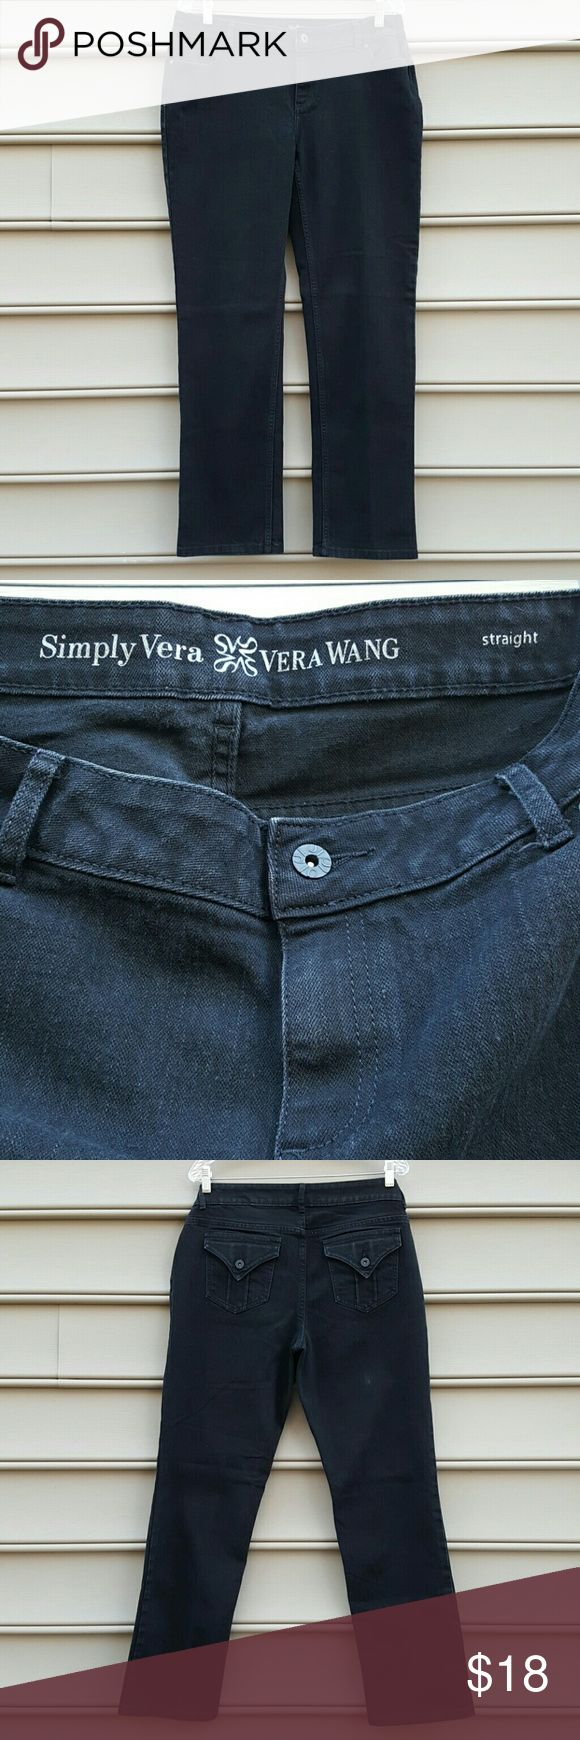 SIMPLY VERA WANG BLACK STRAIGHT CUT JEANS SIMPLY VERA WANG BLACK STRAIGHT CUT JEANS SIZE 12 Simply Vera Vera Wang Jeans Straight Leg